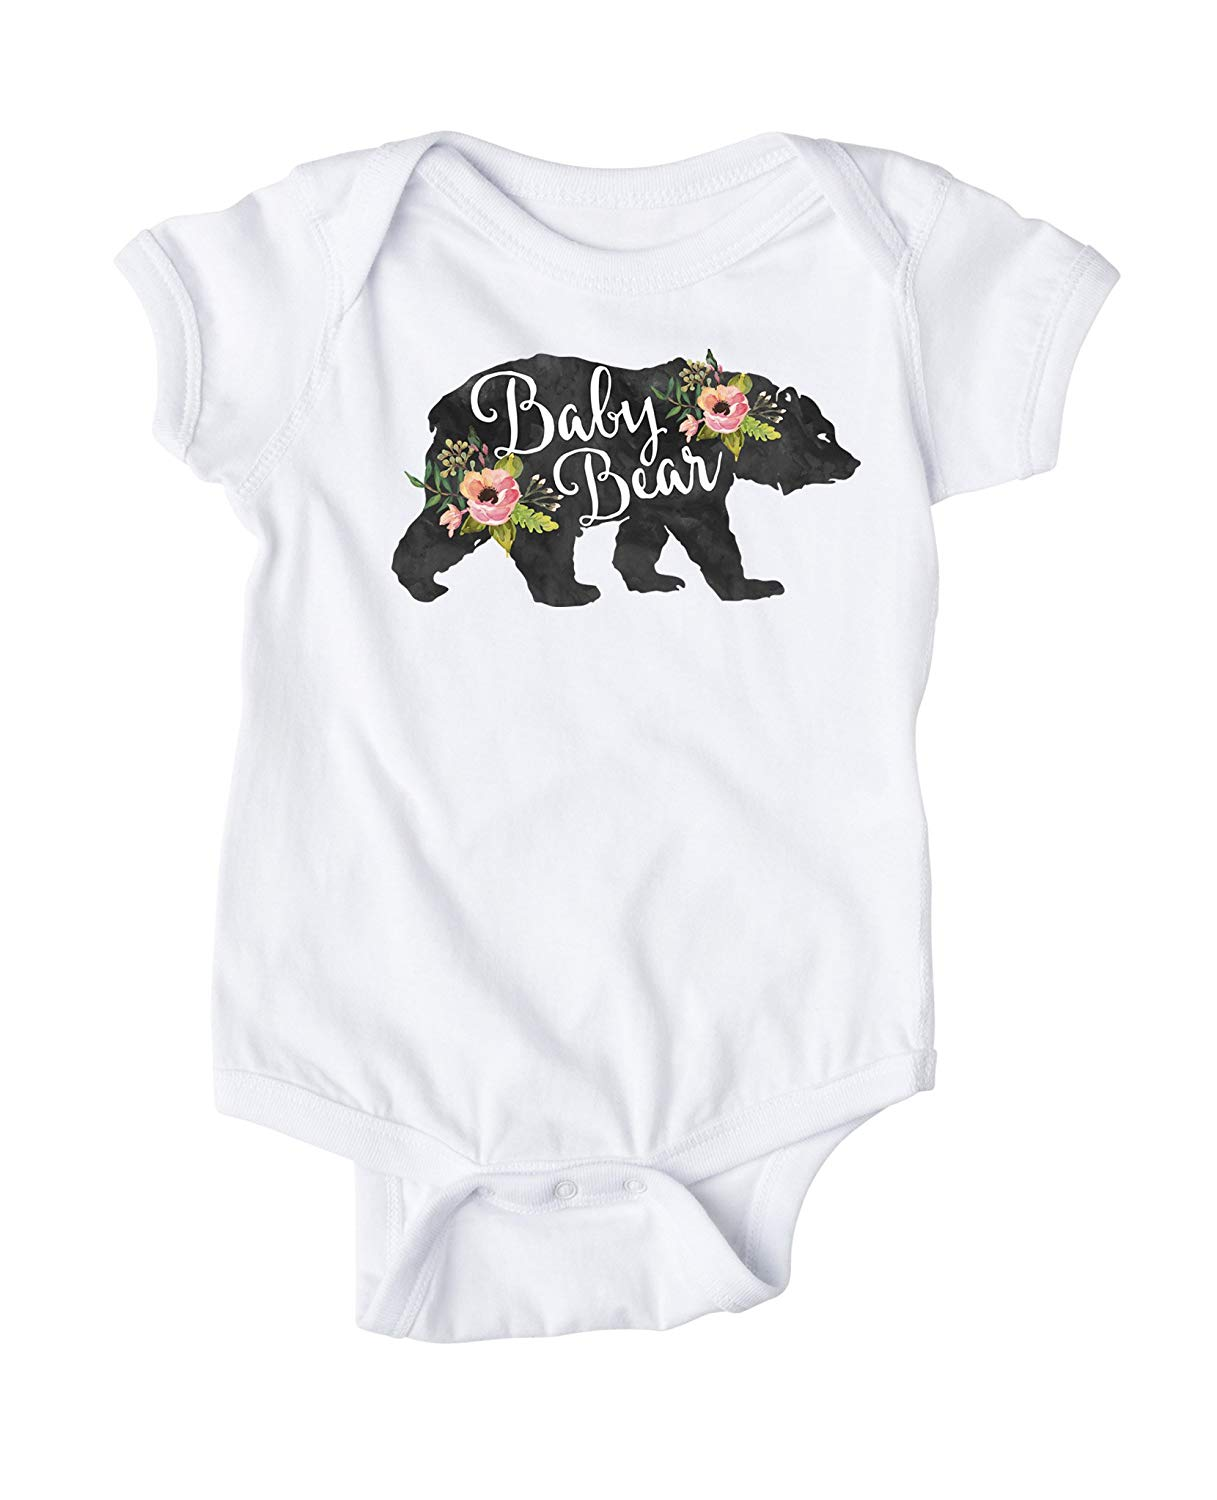 Father's Day outfit for girls, Preemie Girl Father's Day shirt, Baby Bear, sibling shirt, Baby Girl Father's day bodysuit, Baby Girl bear shirt, family shirt set, Father's day baby girl outfit, boho